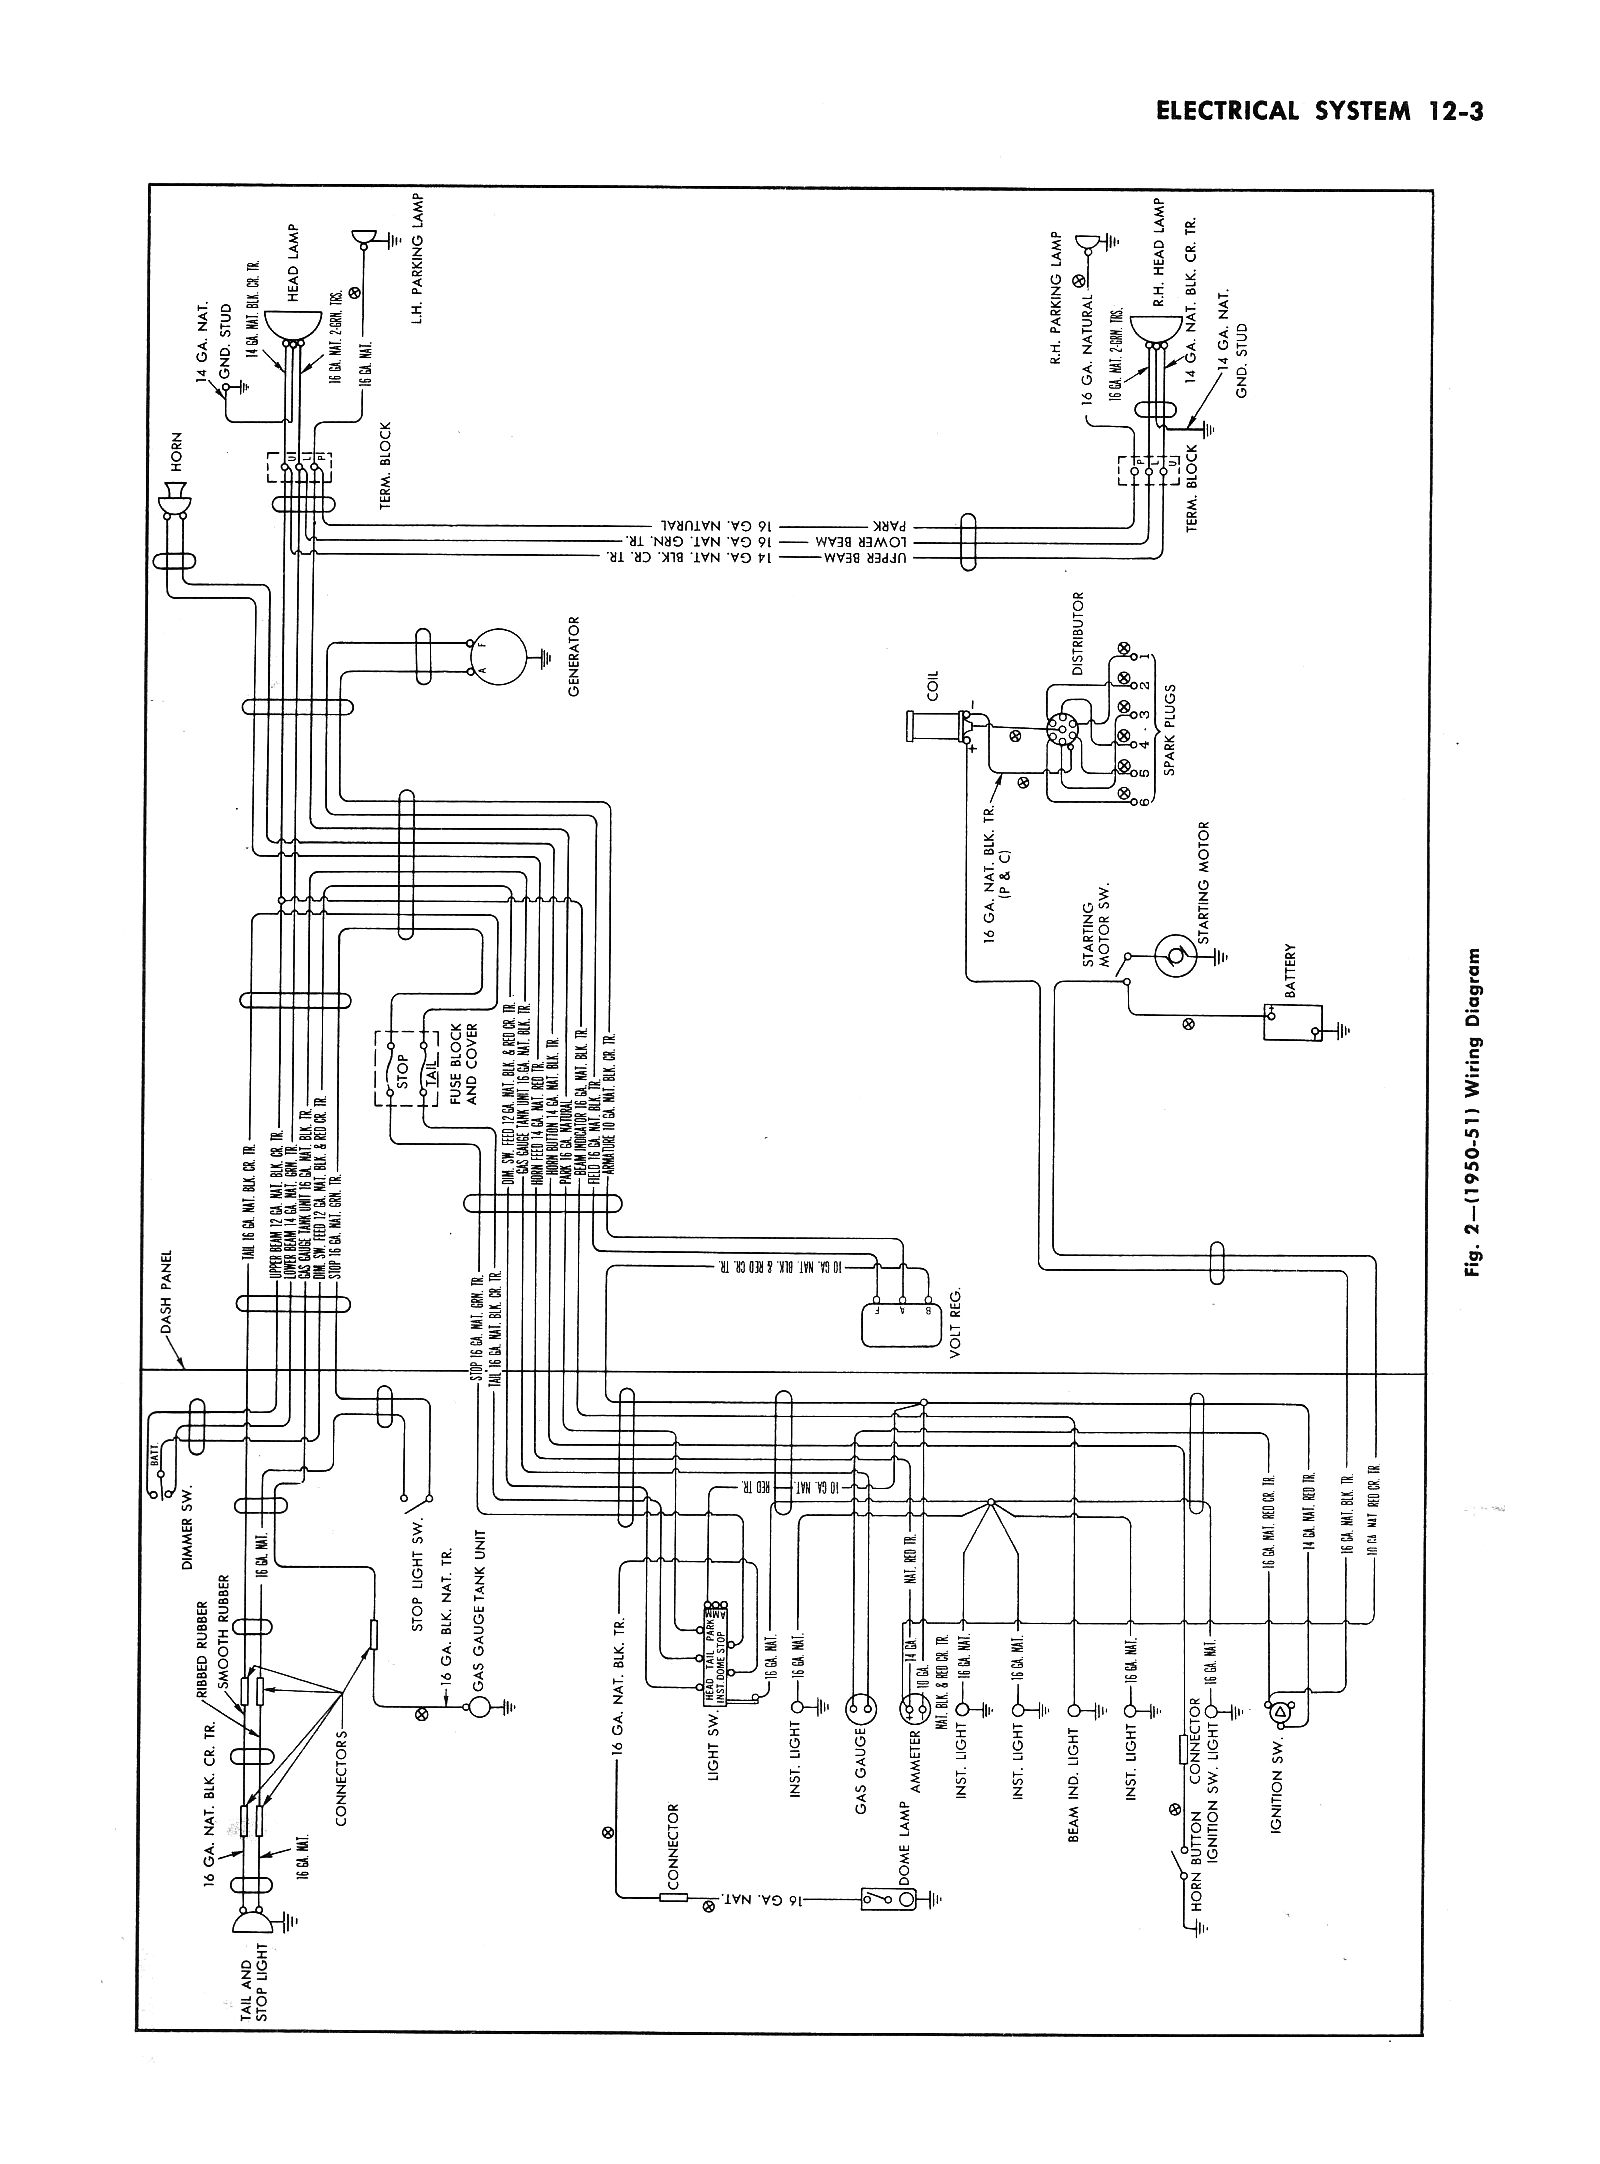 51ctsm1203 1950 chevy truck wiring harness on 1950 download wirning diagrams chevy truck wiring harness at soozxer.org